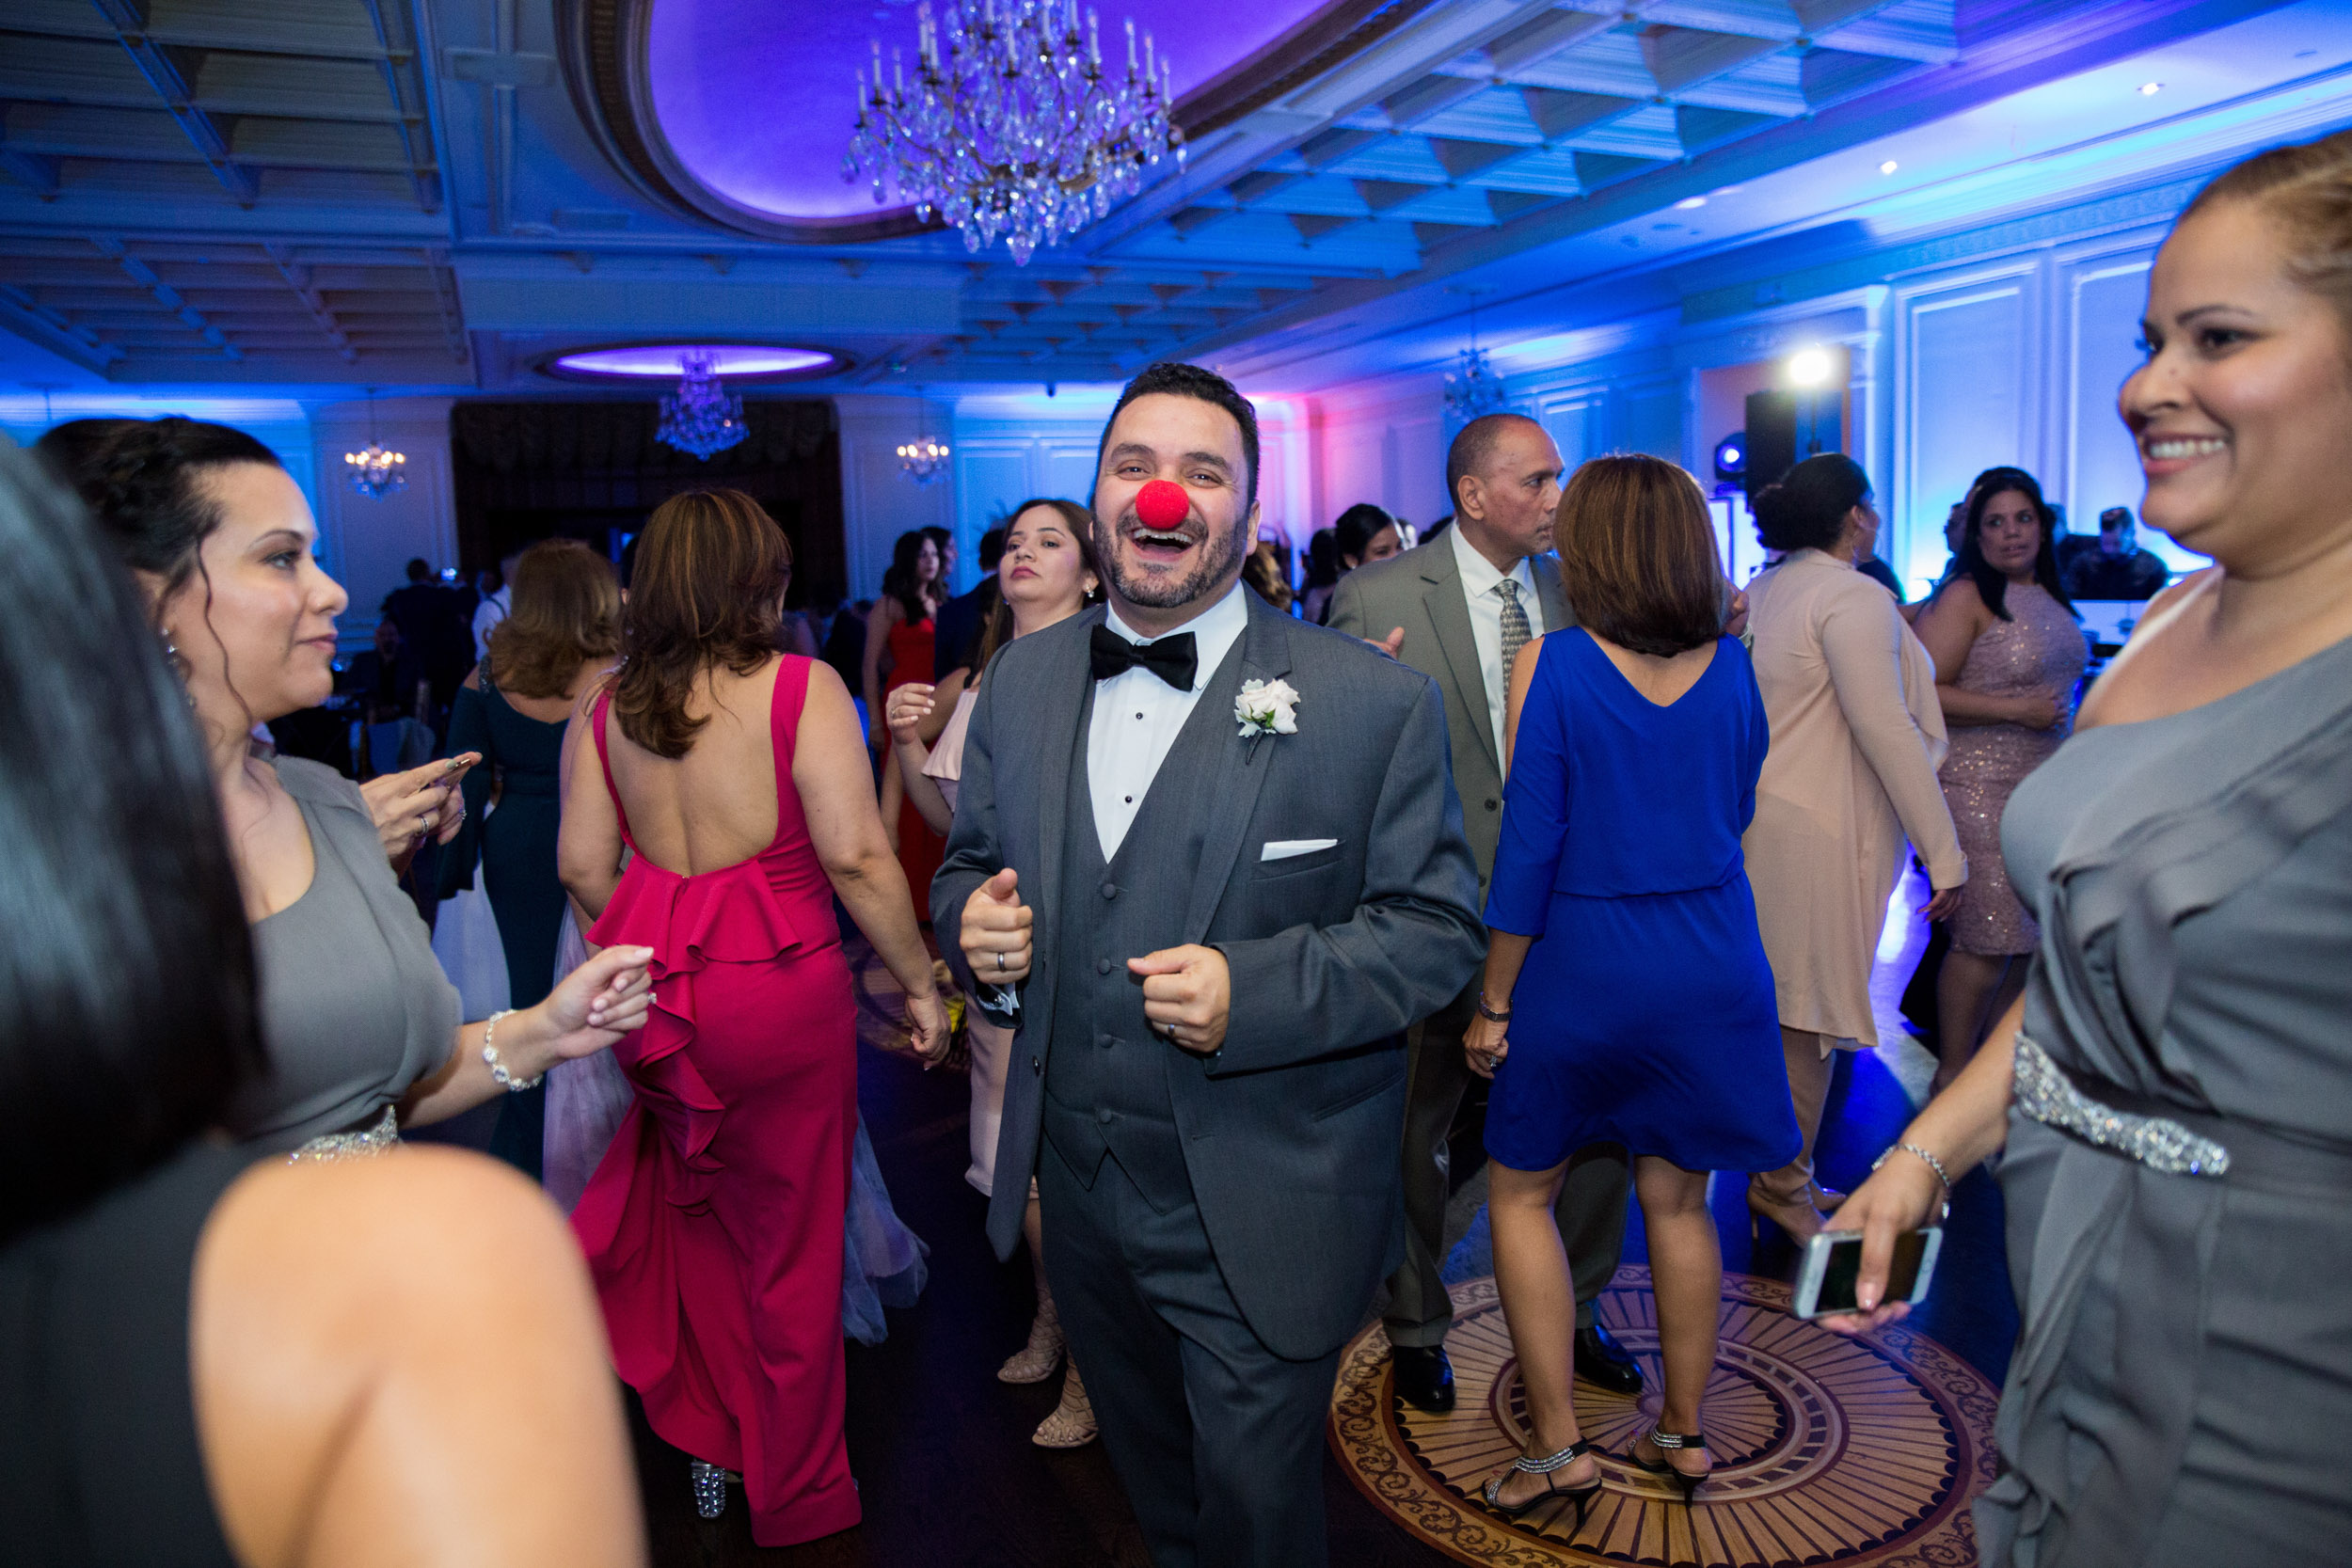 Entertainment - At every event, guests remember the food and the music...so don't take chances with either. At Silverfox, we specialize in packed dance floors, happy guests and tired feet! We'll celebrate your love with elegance and energy...and keep your guests partying. Our DJs and MCs will produce an event that your family and friends will talk about for years to come.